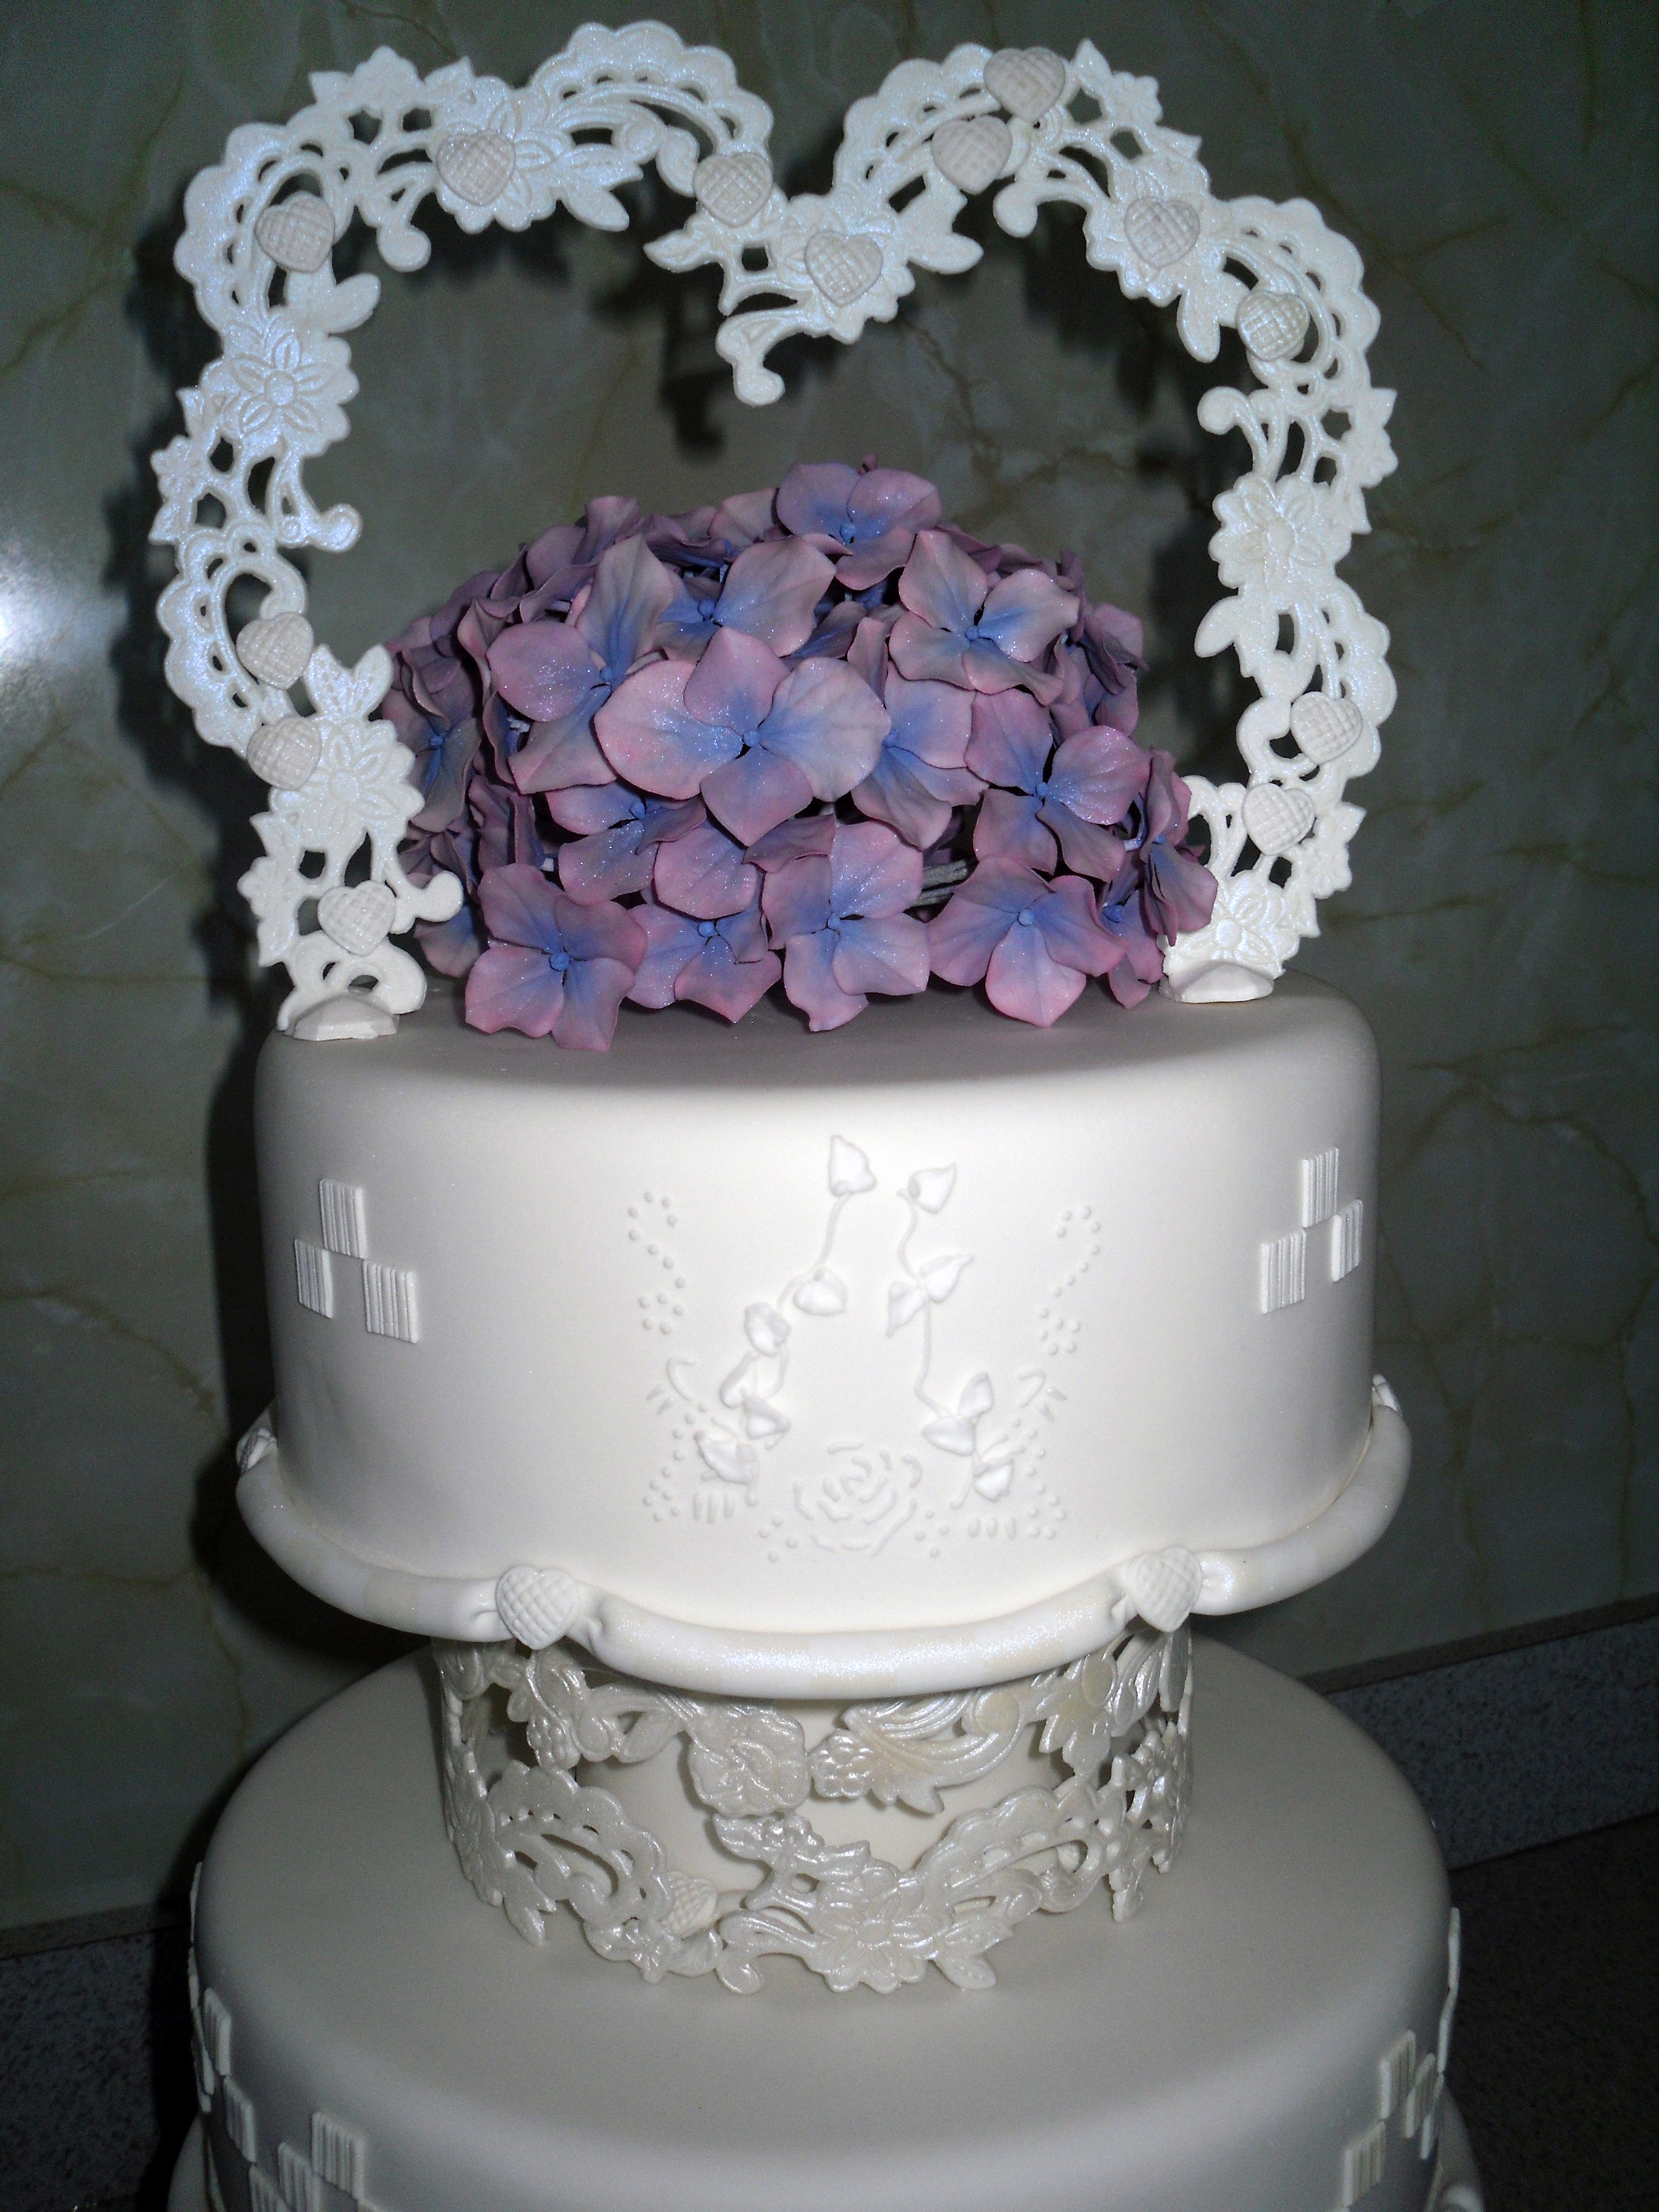 Cake Images Co Nz : Wellington Cake - Welcome to Cindys Cakes